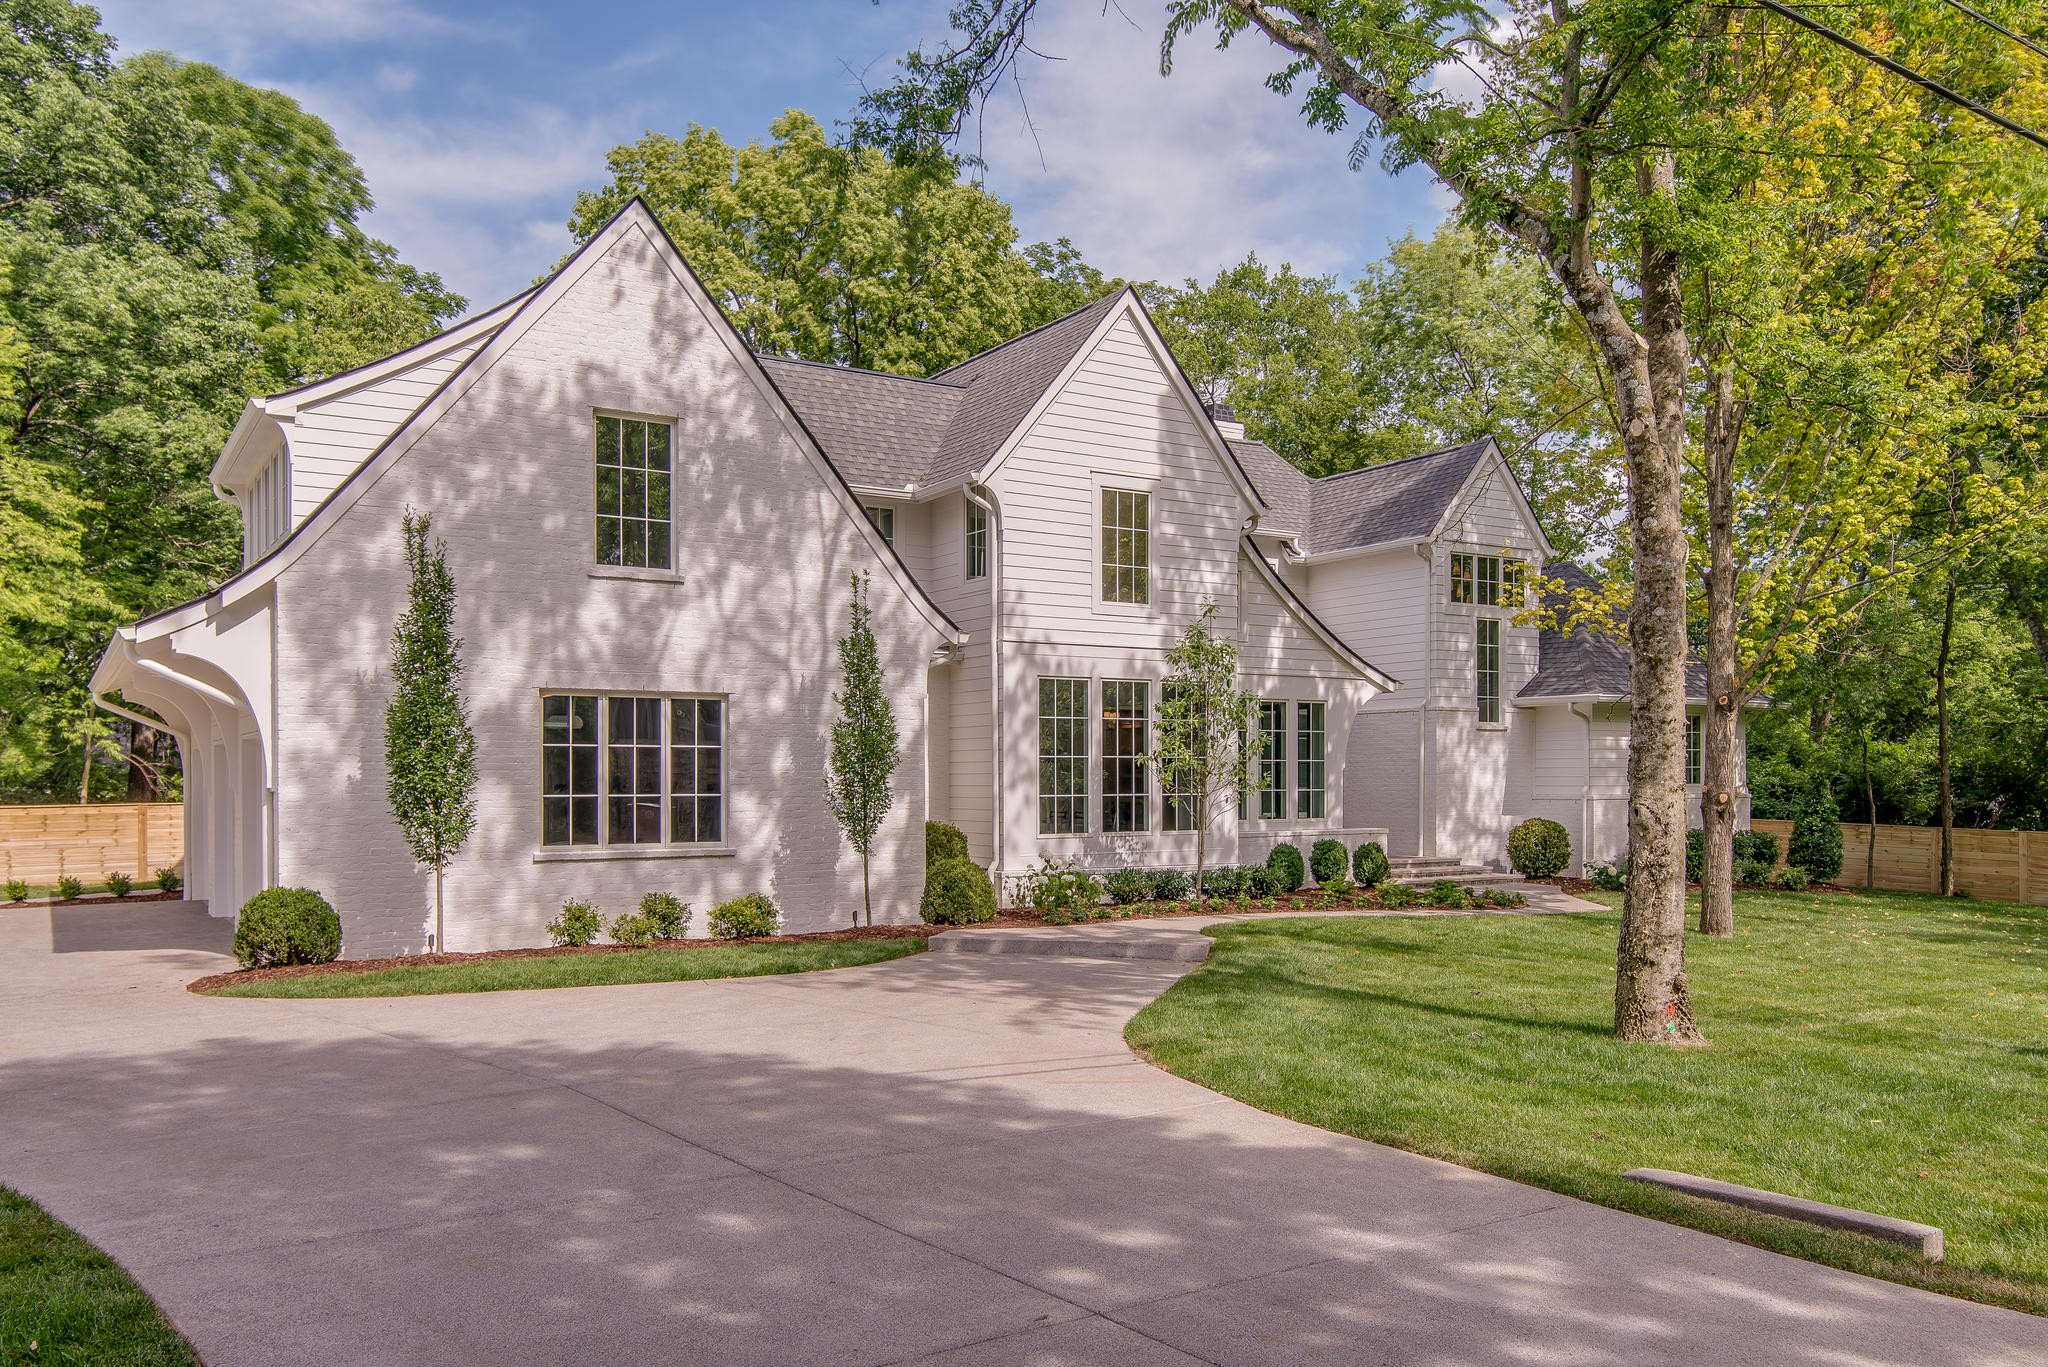 Unparalleled quality of design and construction in the heart of Oak Hill.  Perfectly manicured flat lot, quarter sawn white oak floors throughout, solid brass door hardware, quartz and marble countertops, designer lighting fixtures throughout, beaded frameless inset cabinetry and a list of additional features too long to list.